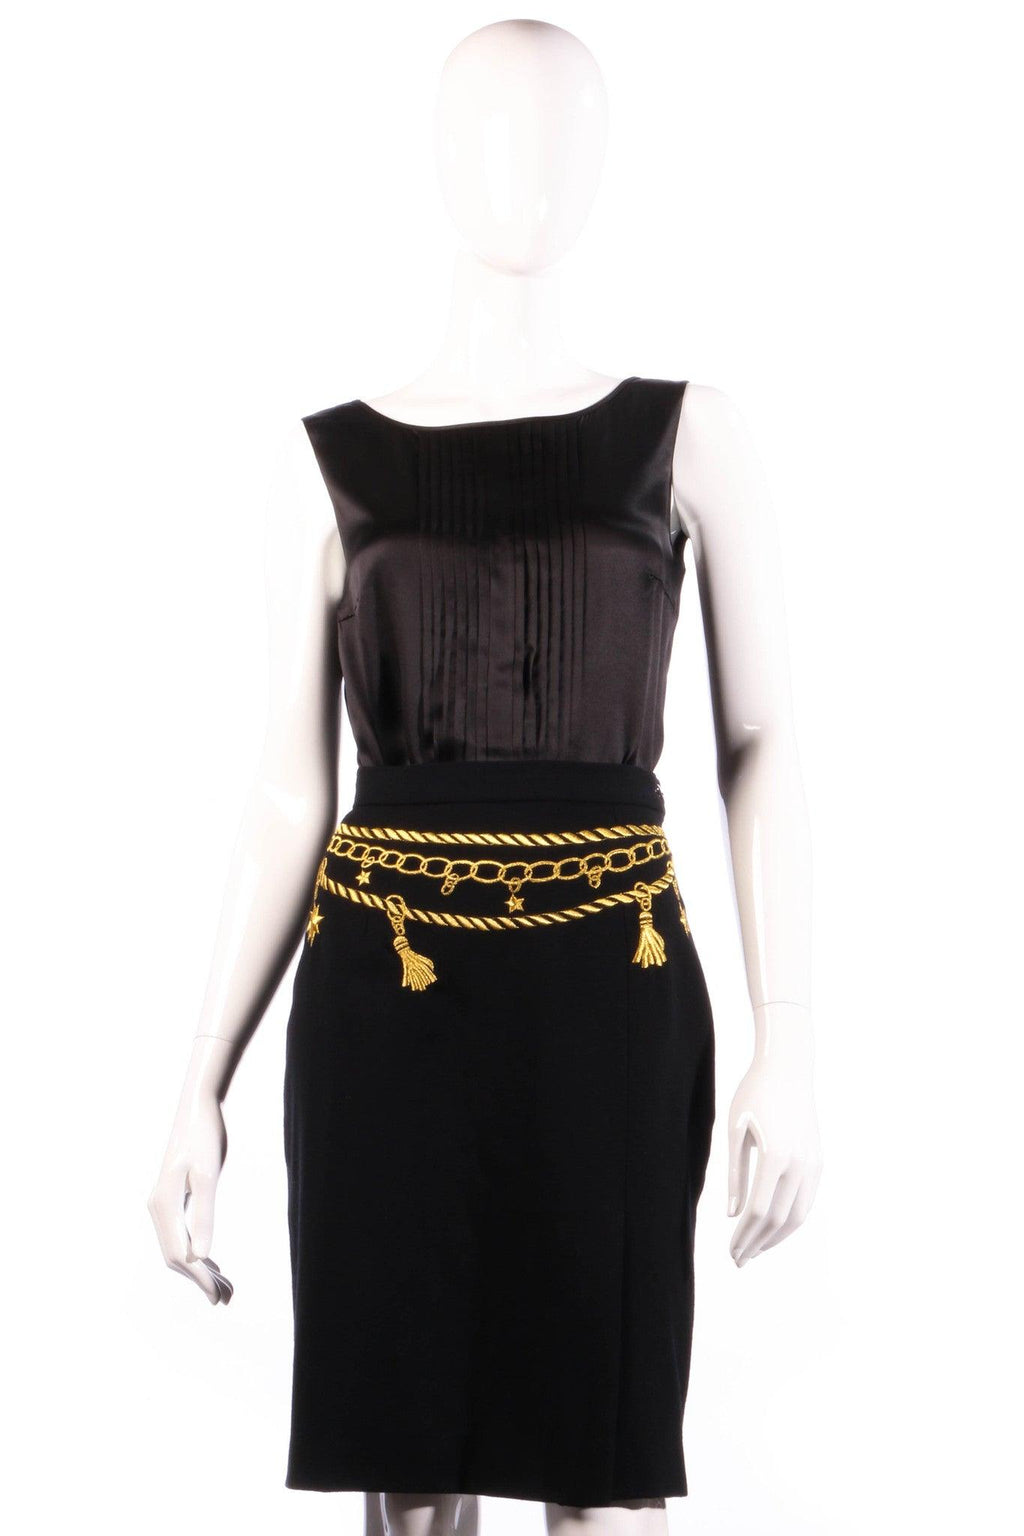 Black skirt with gold chain embroidery